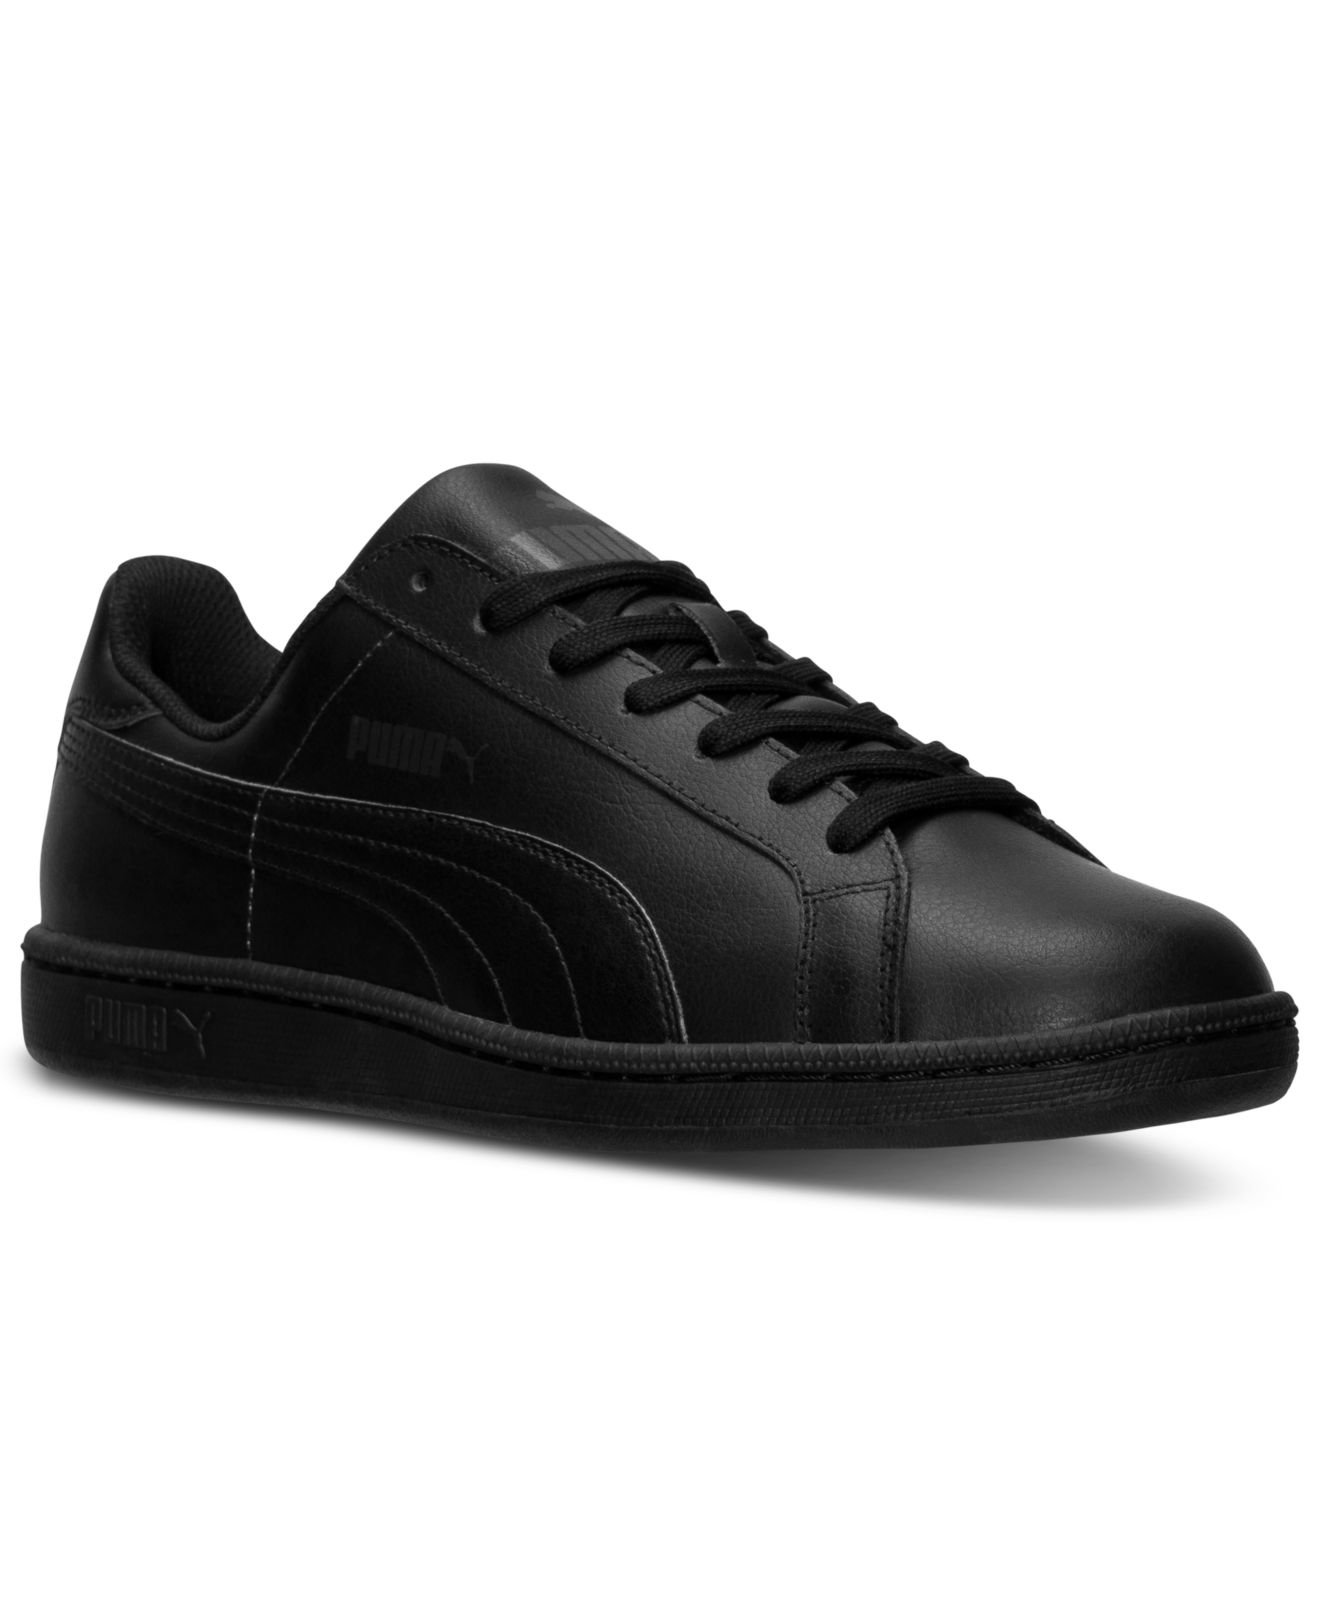 113d93a0a39e Lyst - PUMA Men S Smash Leather Casual Sneakers From Finish Line in ...